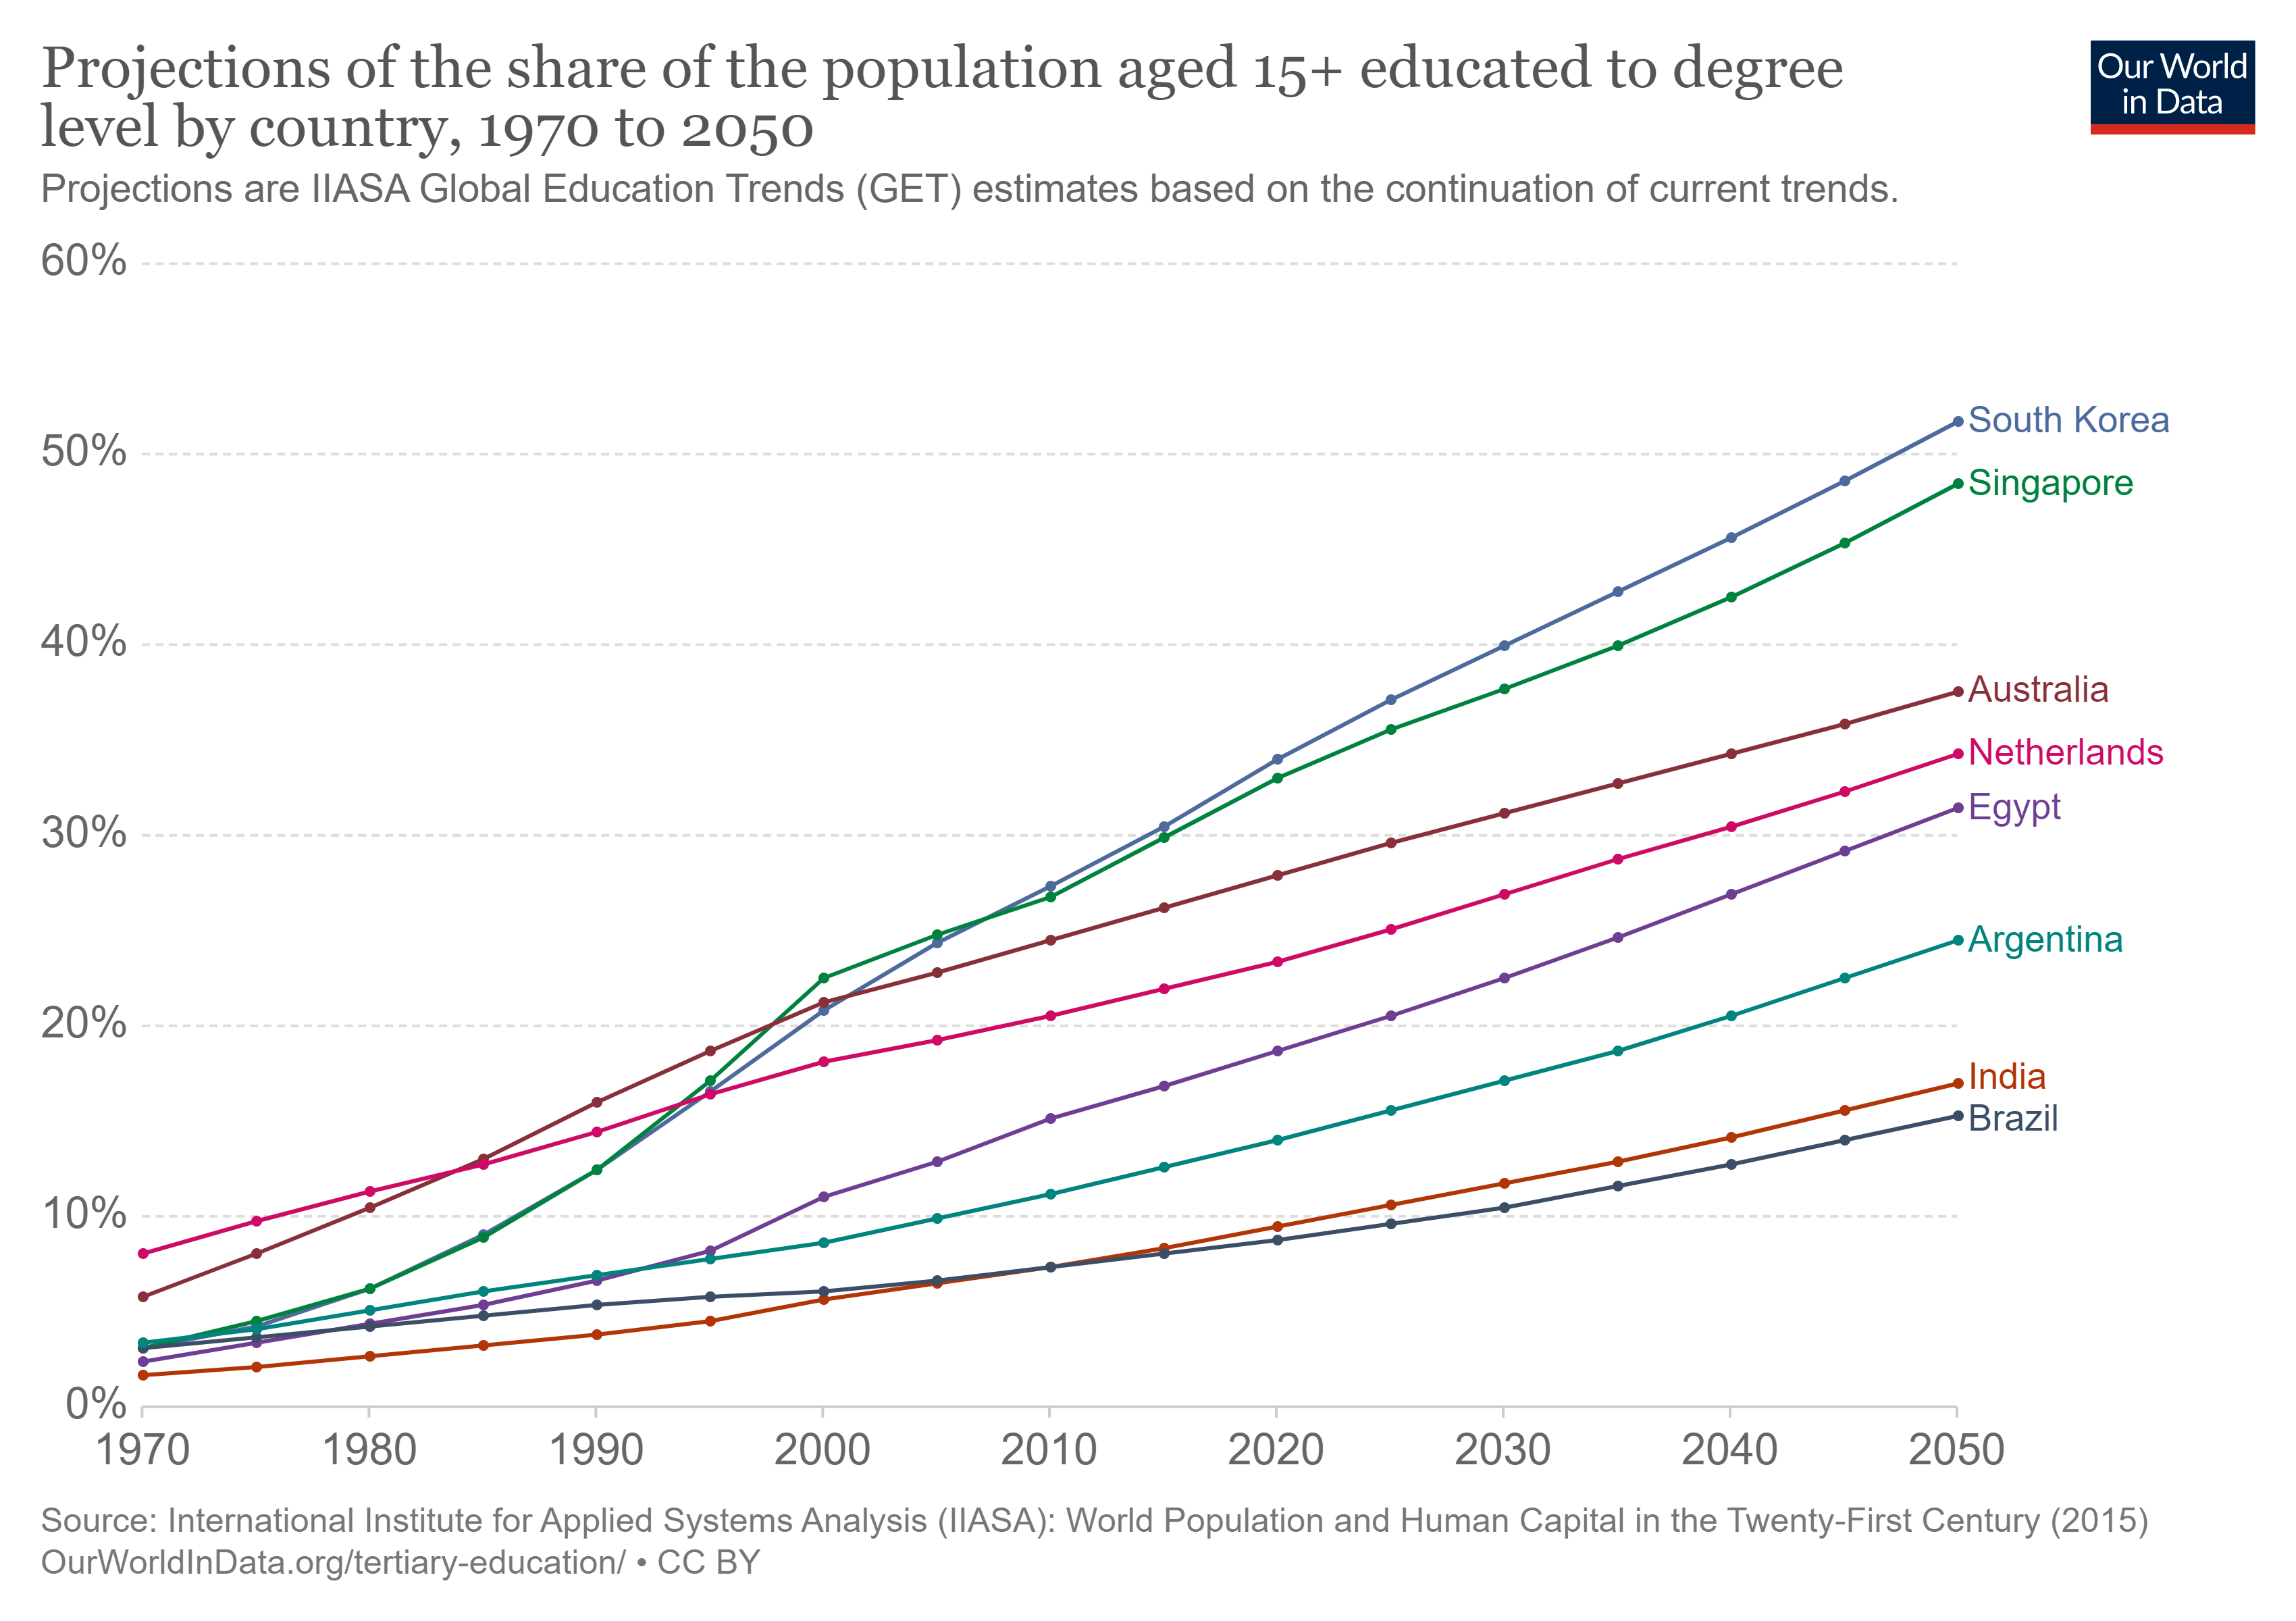 Projections of the share of the world's population in tertiary education